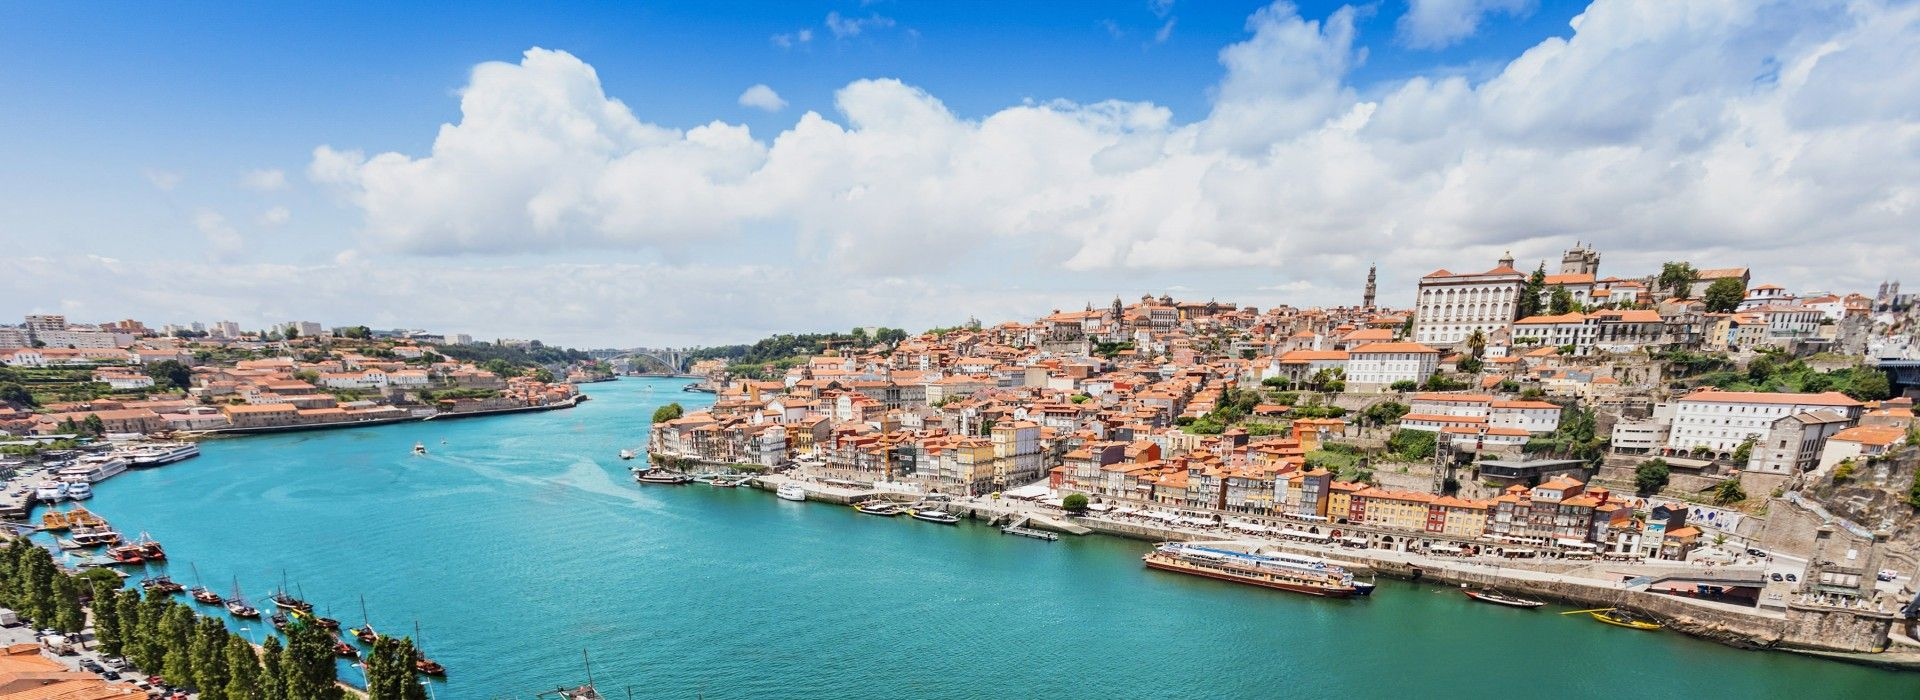 Sightseeing, attractions, culture and history Tours in Lisbon